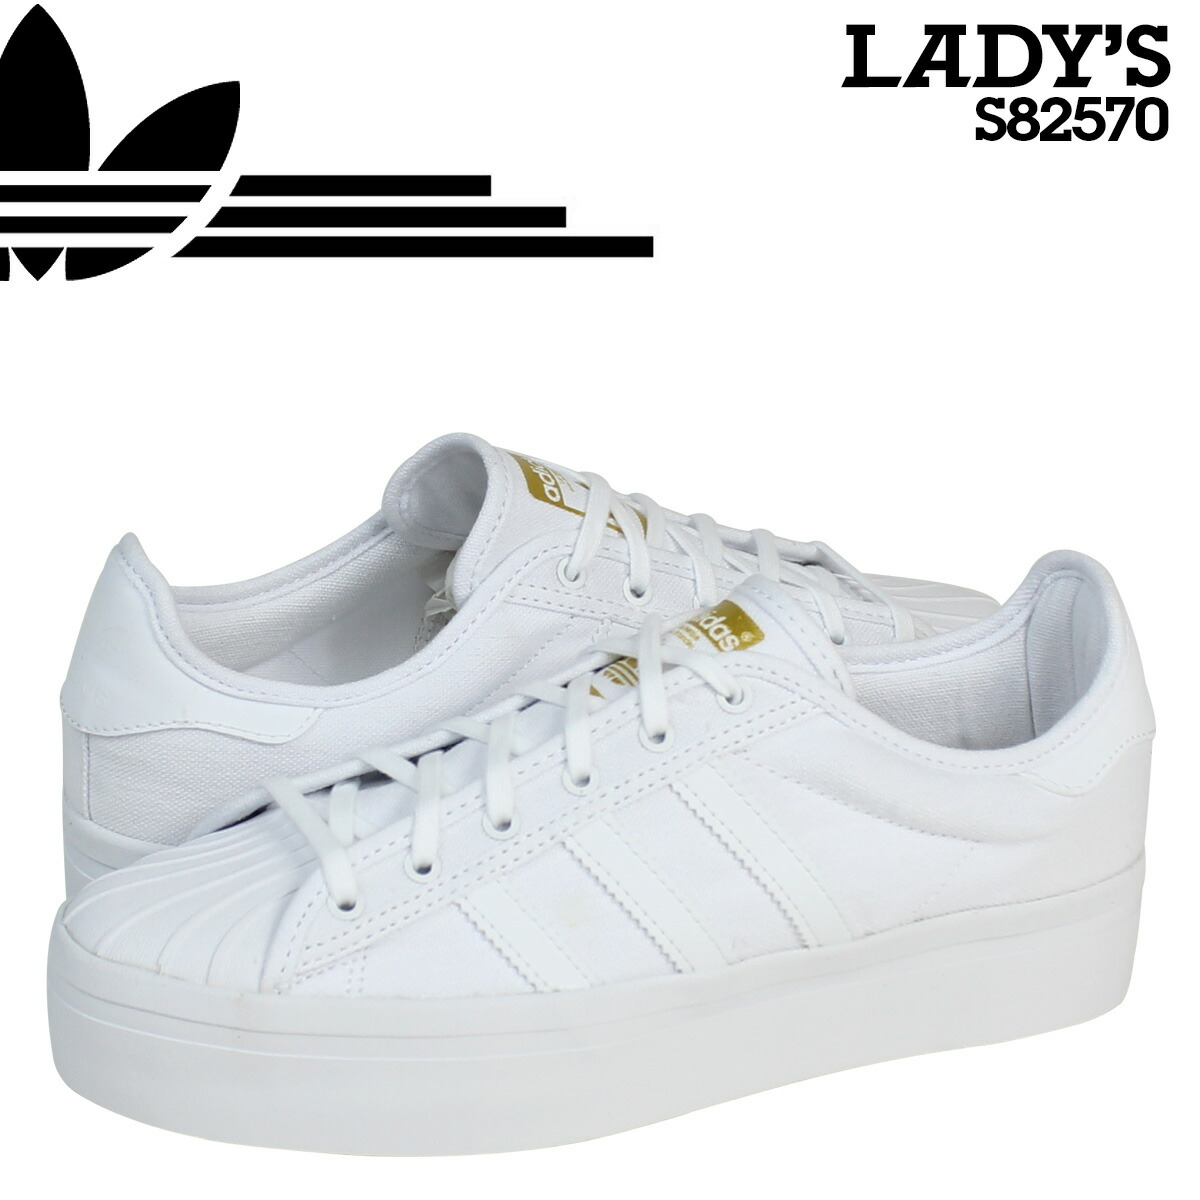 znvuc adidas originals superstar adidas shoes purchase online